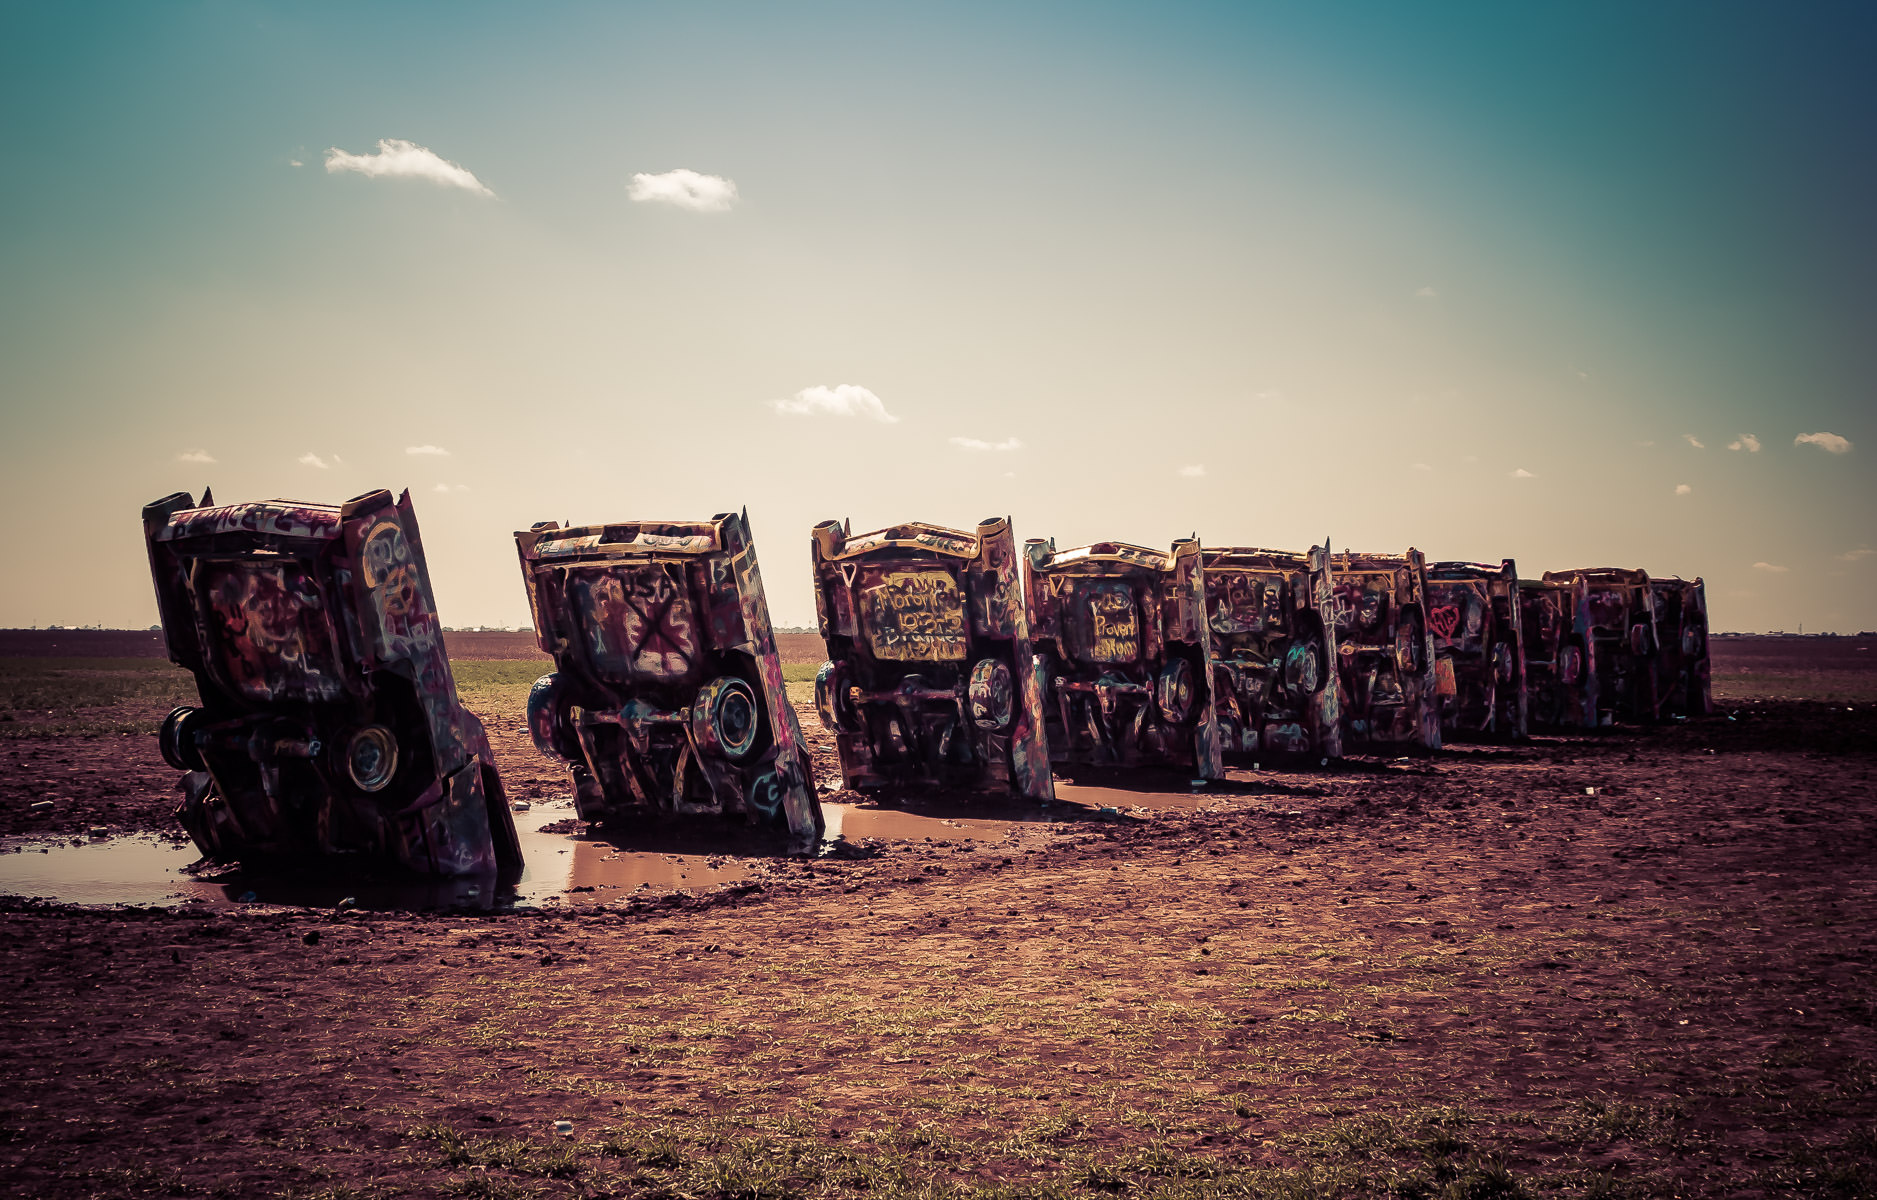 Eccentric Stanley Marsh 3's well-known Cadillac Ranch, near Amarillo, Texas.